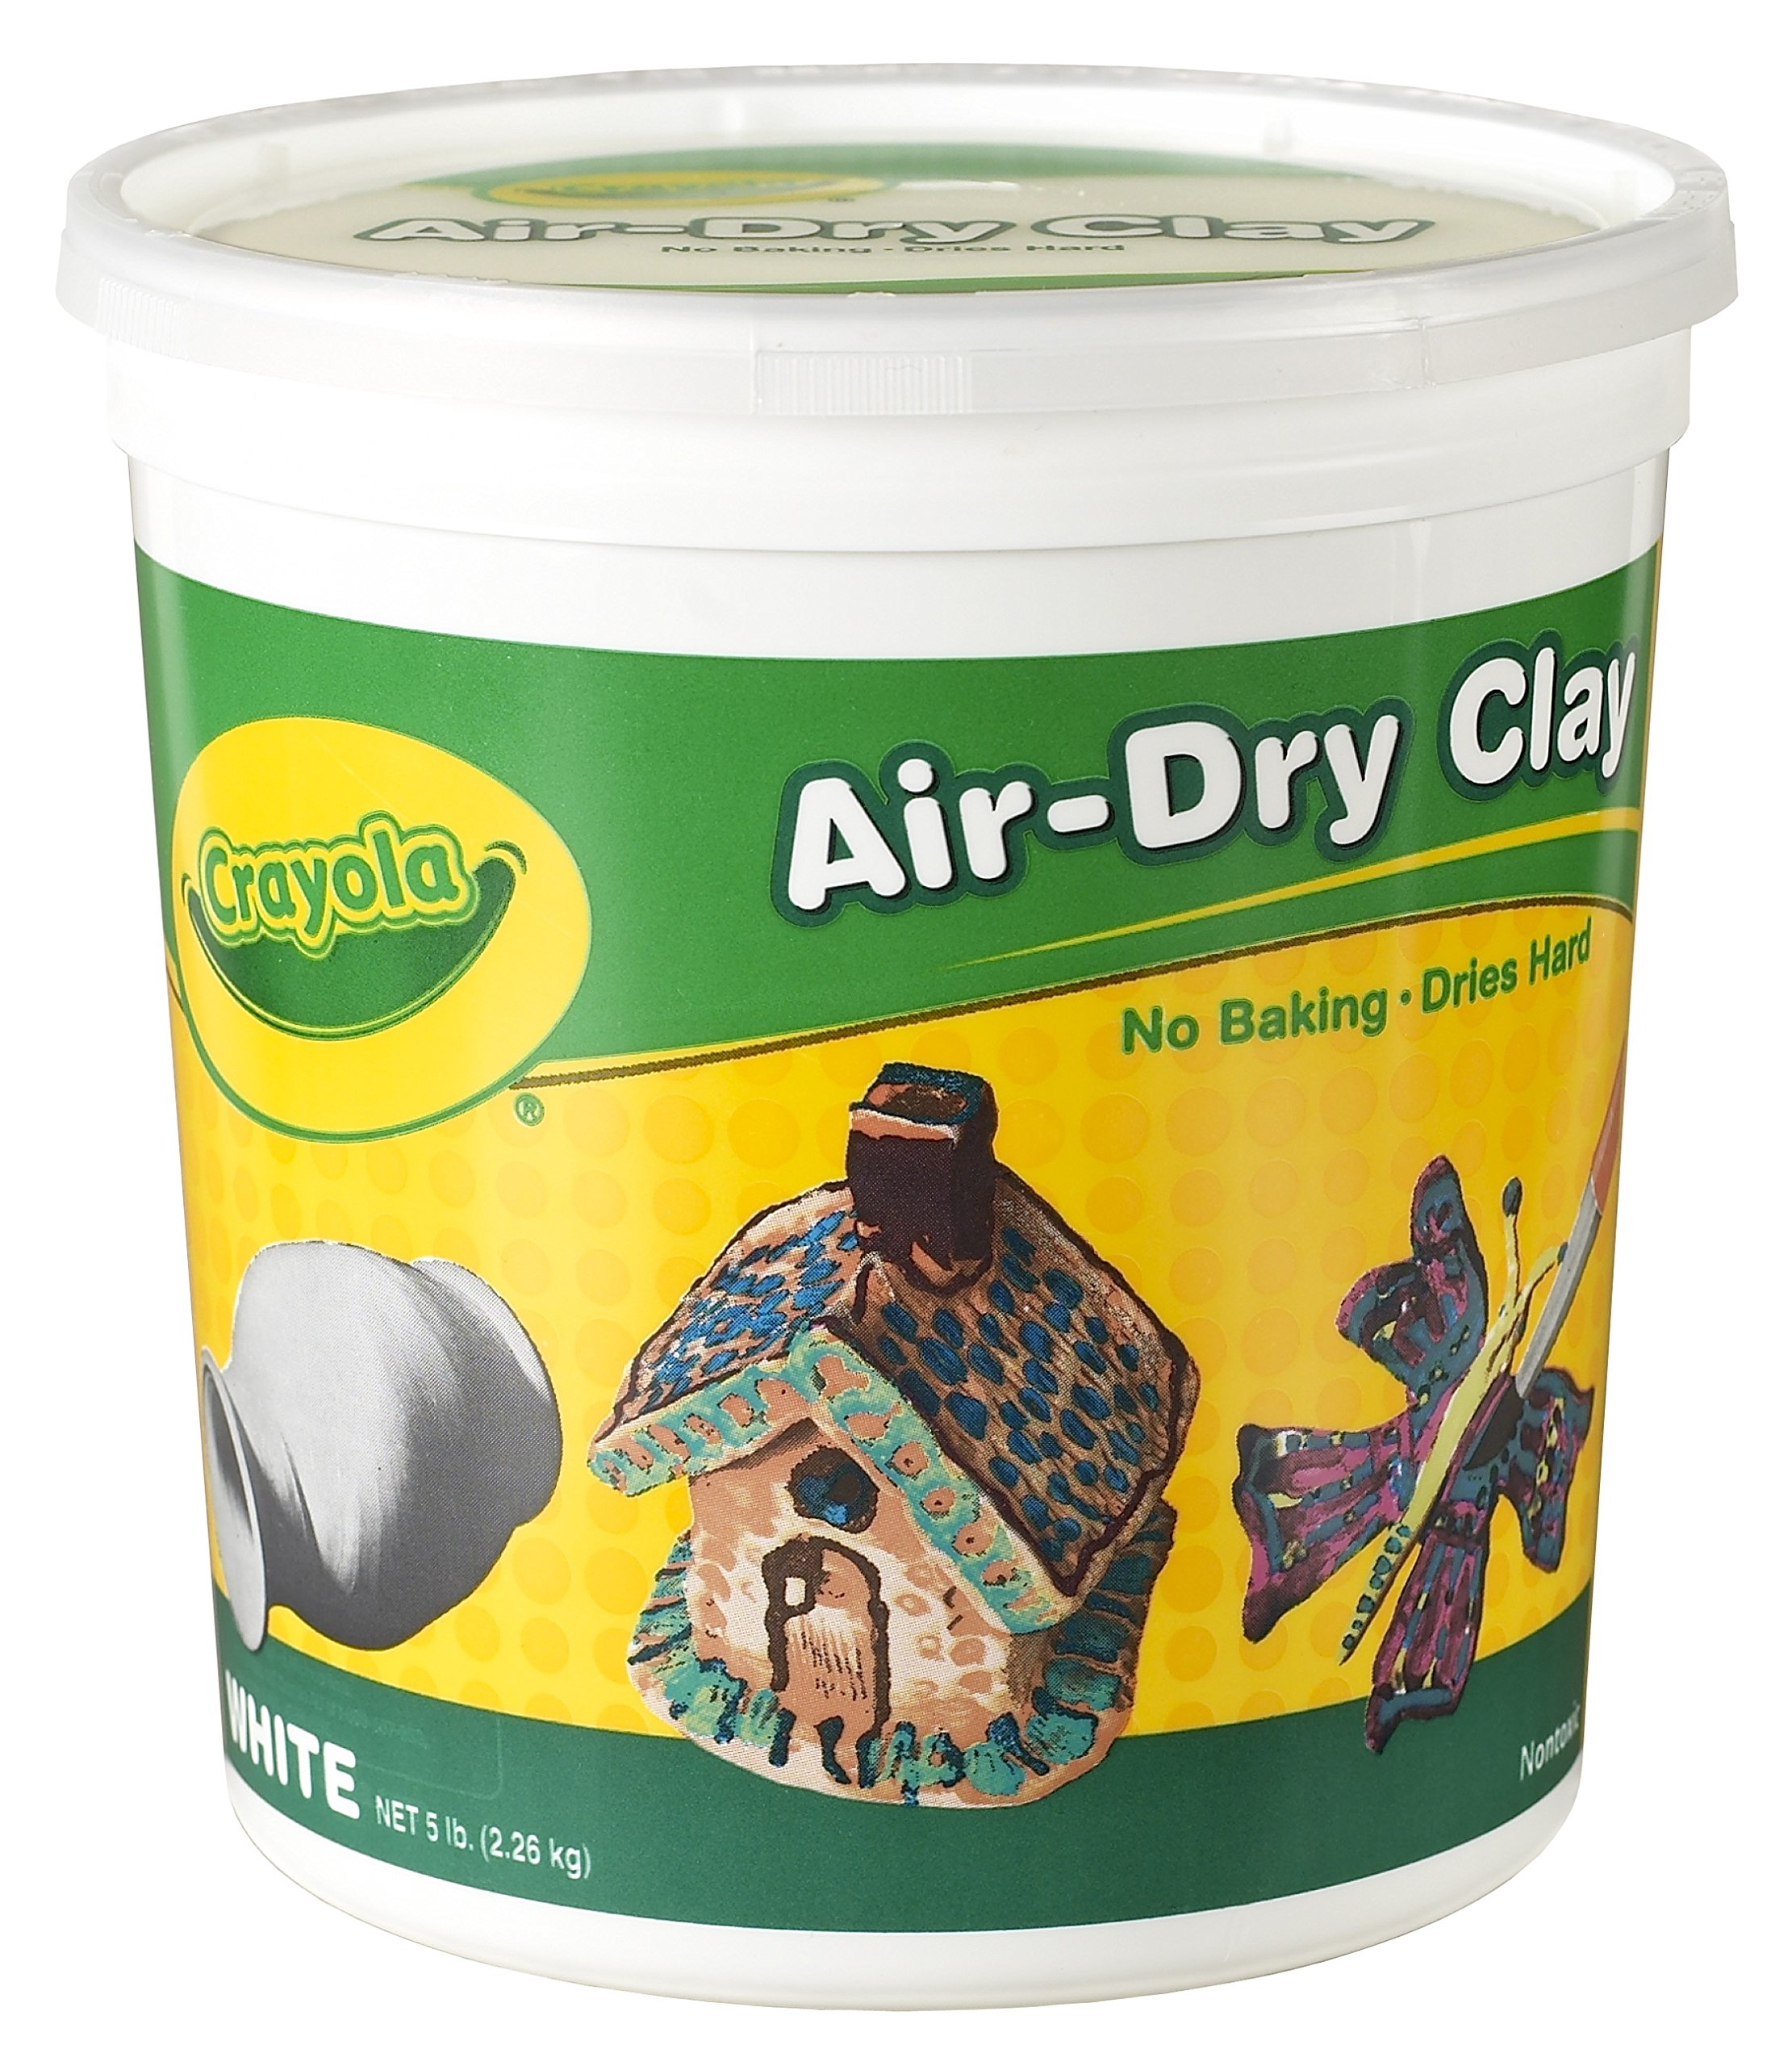 Crayola Air-Dry Clay, White, 5 lb. Resealable Bucket, Great for Classroom, Educational, Art Tools